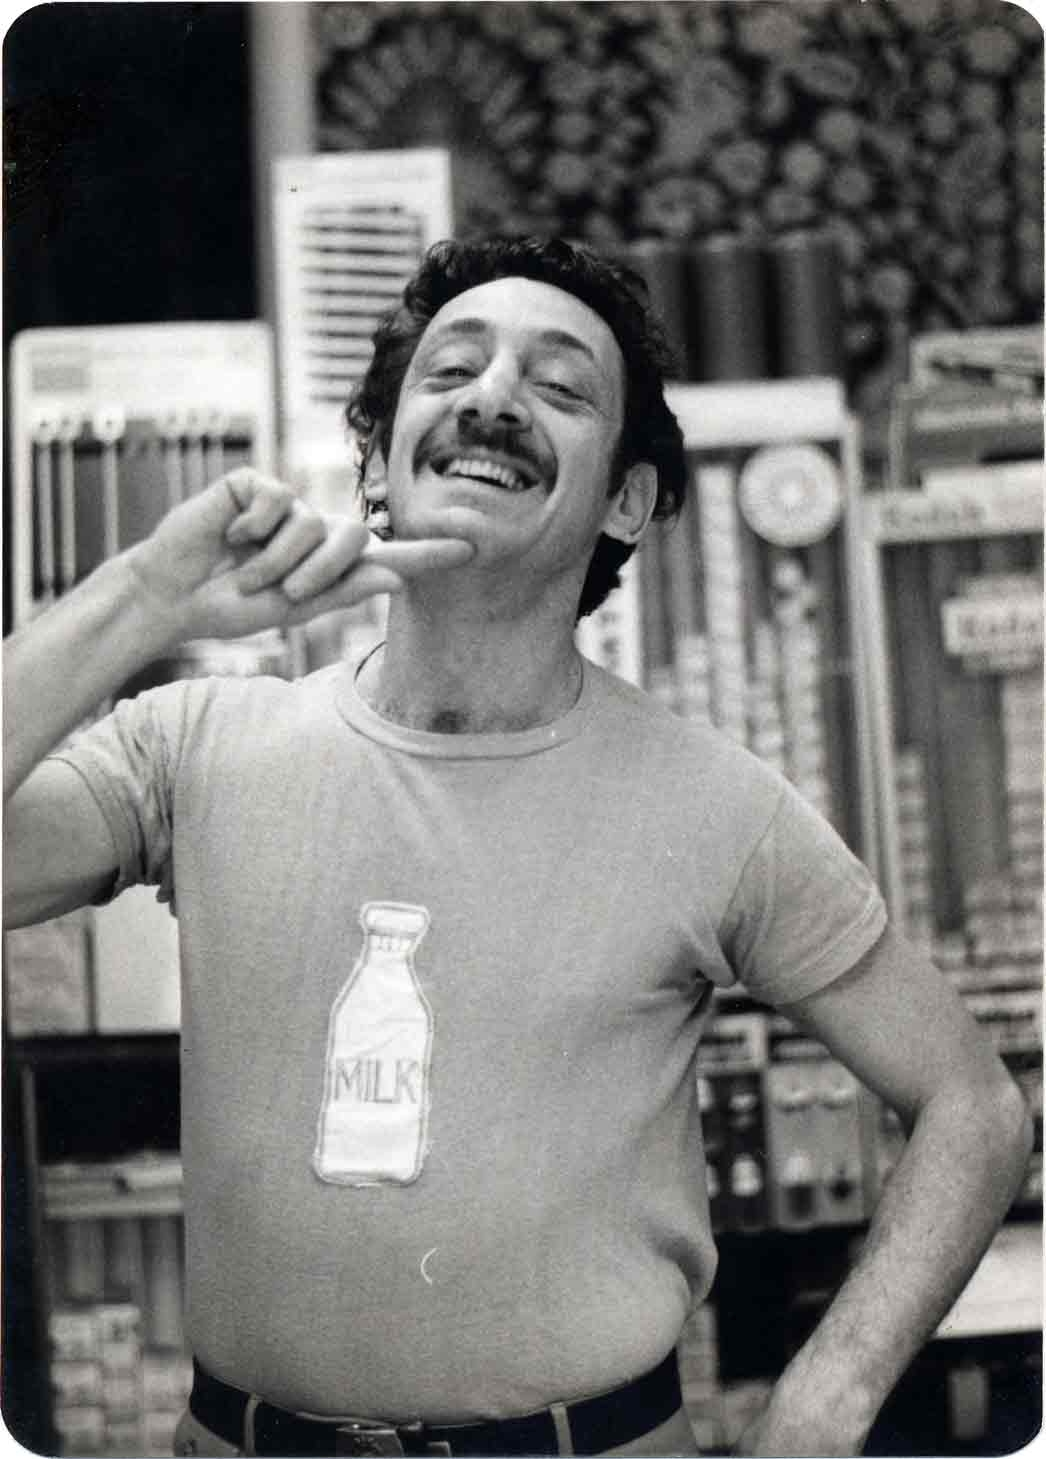 harvey milk with milk